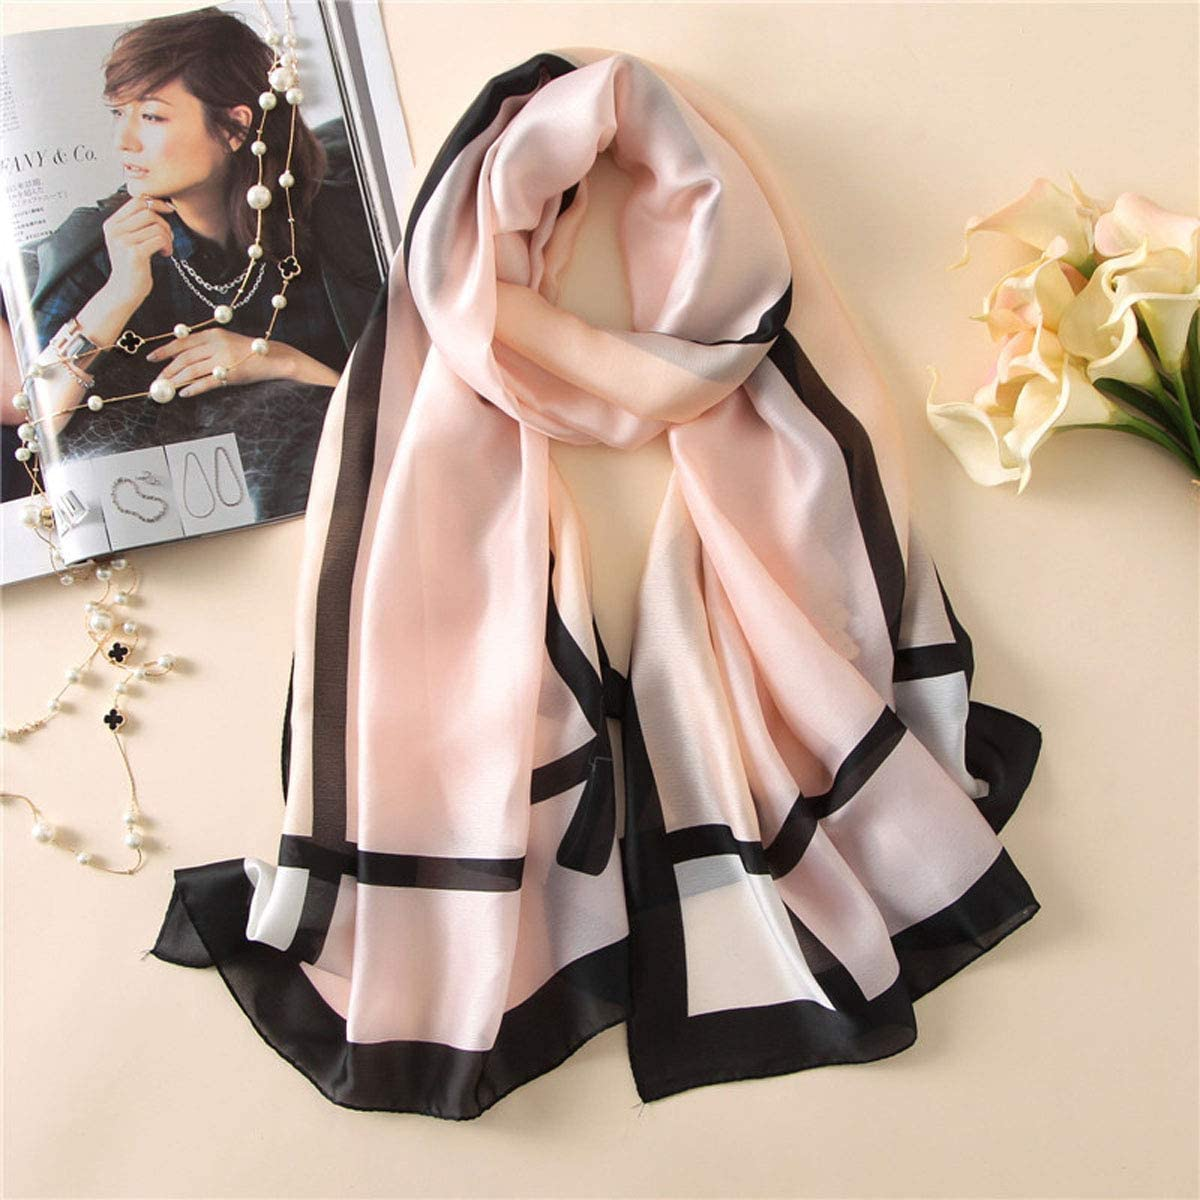 Fashion Scarves For Men Women Winter Warm Shawl Skillet Soft Scarf